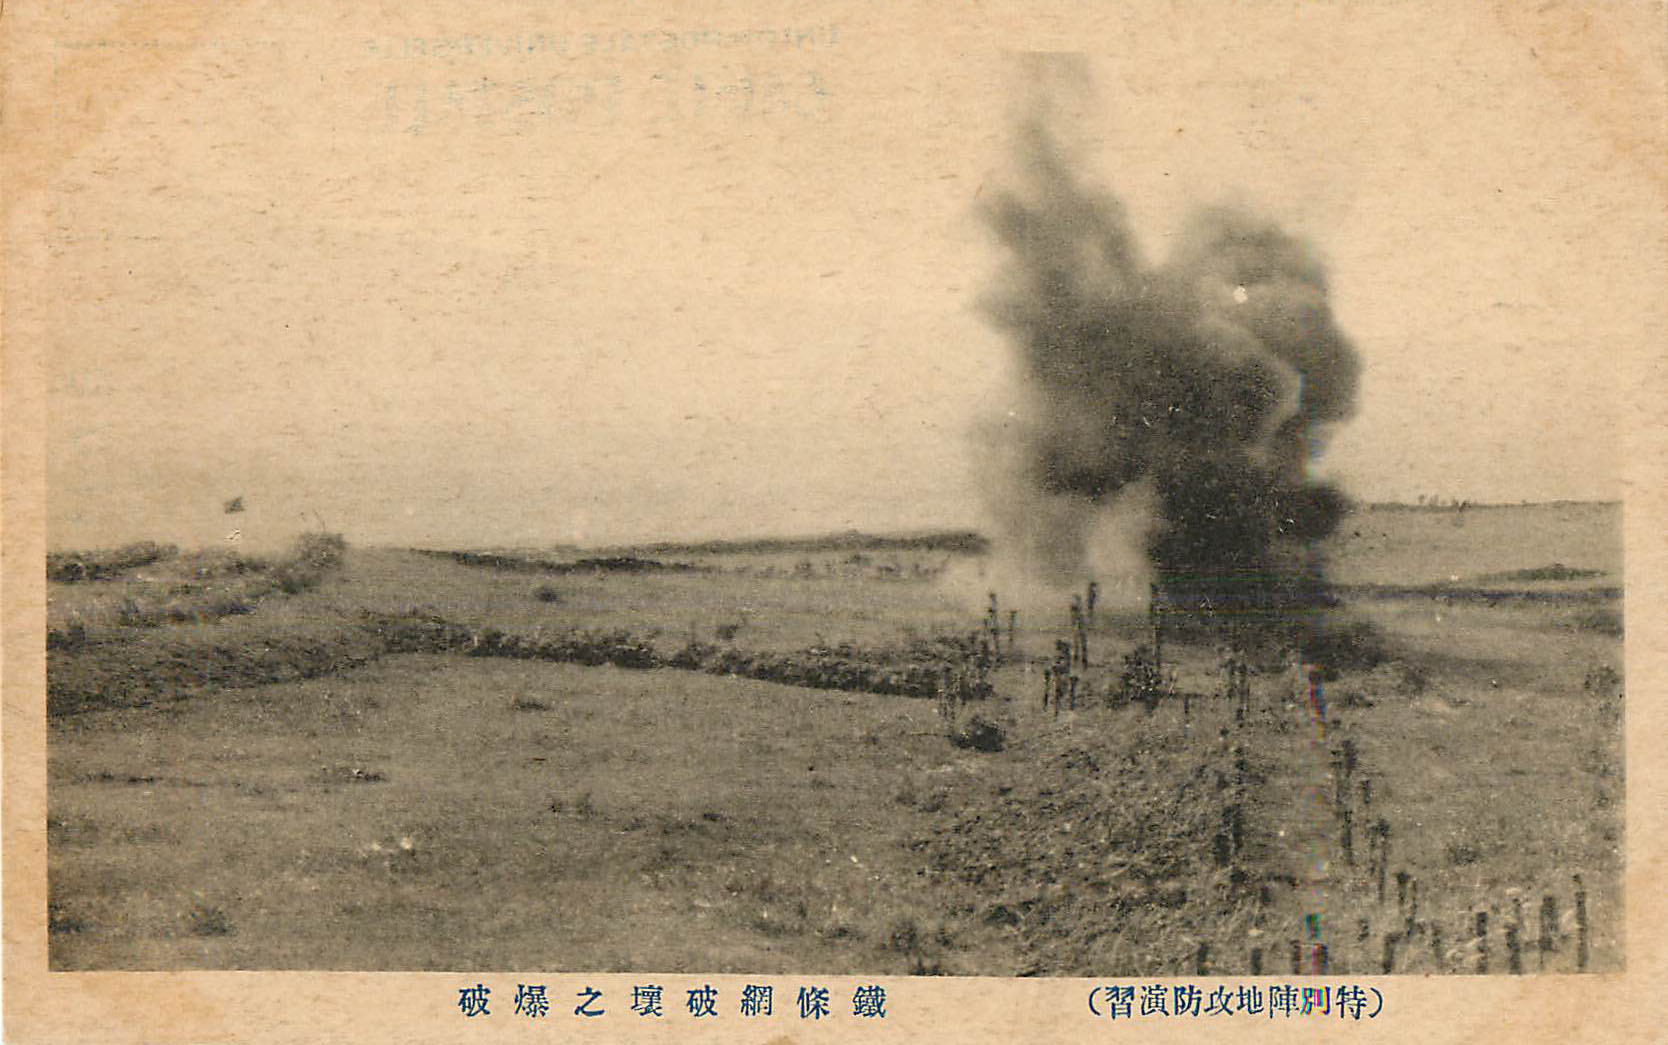 Japan - WWI Battle, Field Scene